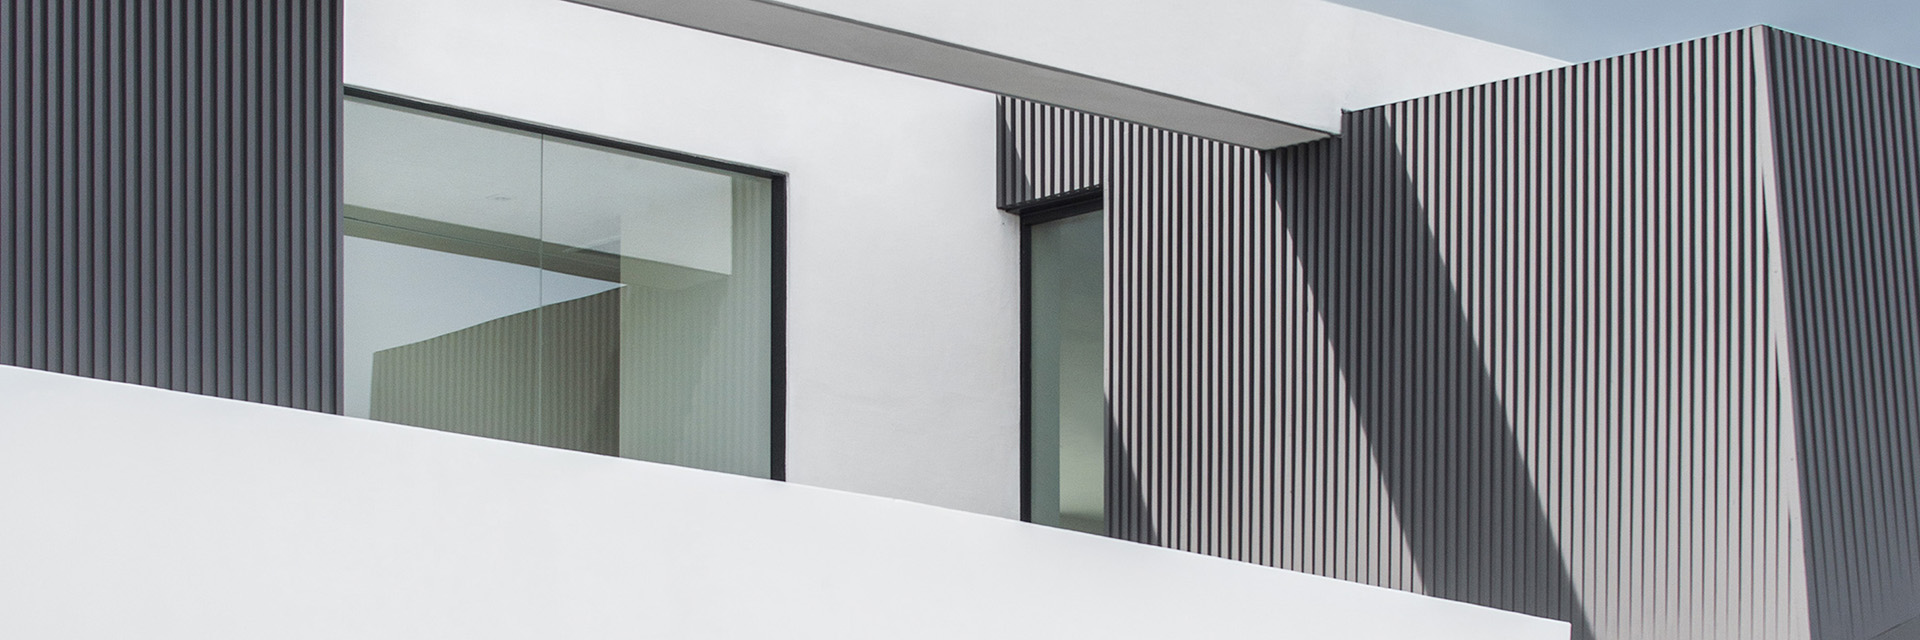 ArchDaily - ELL